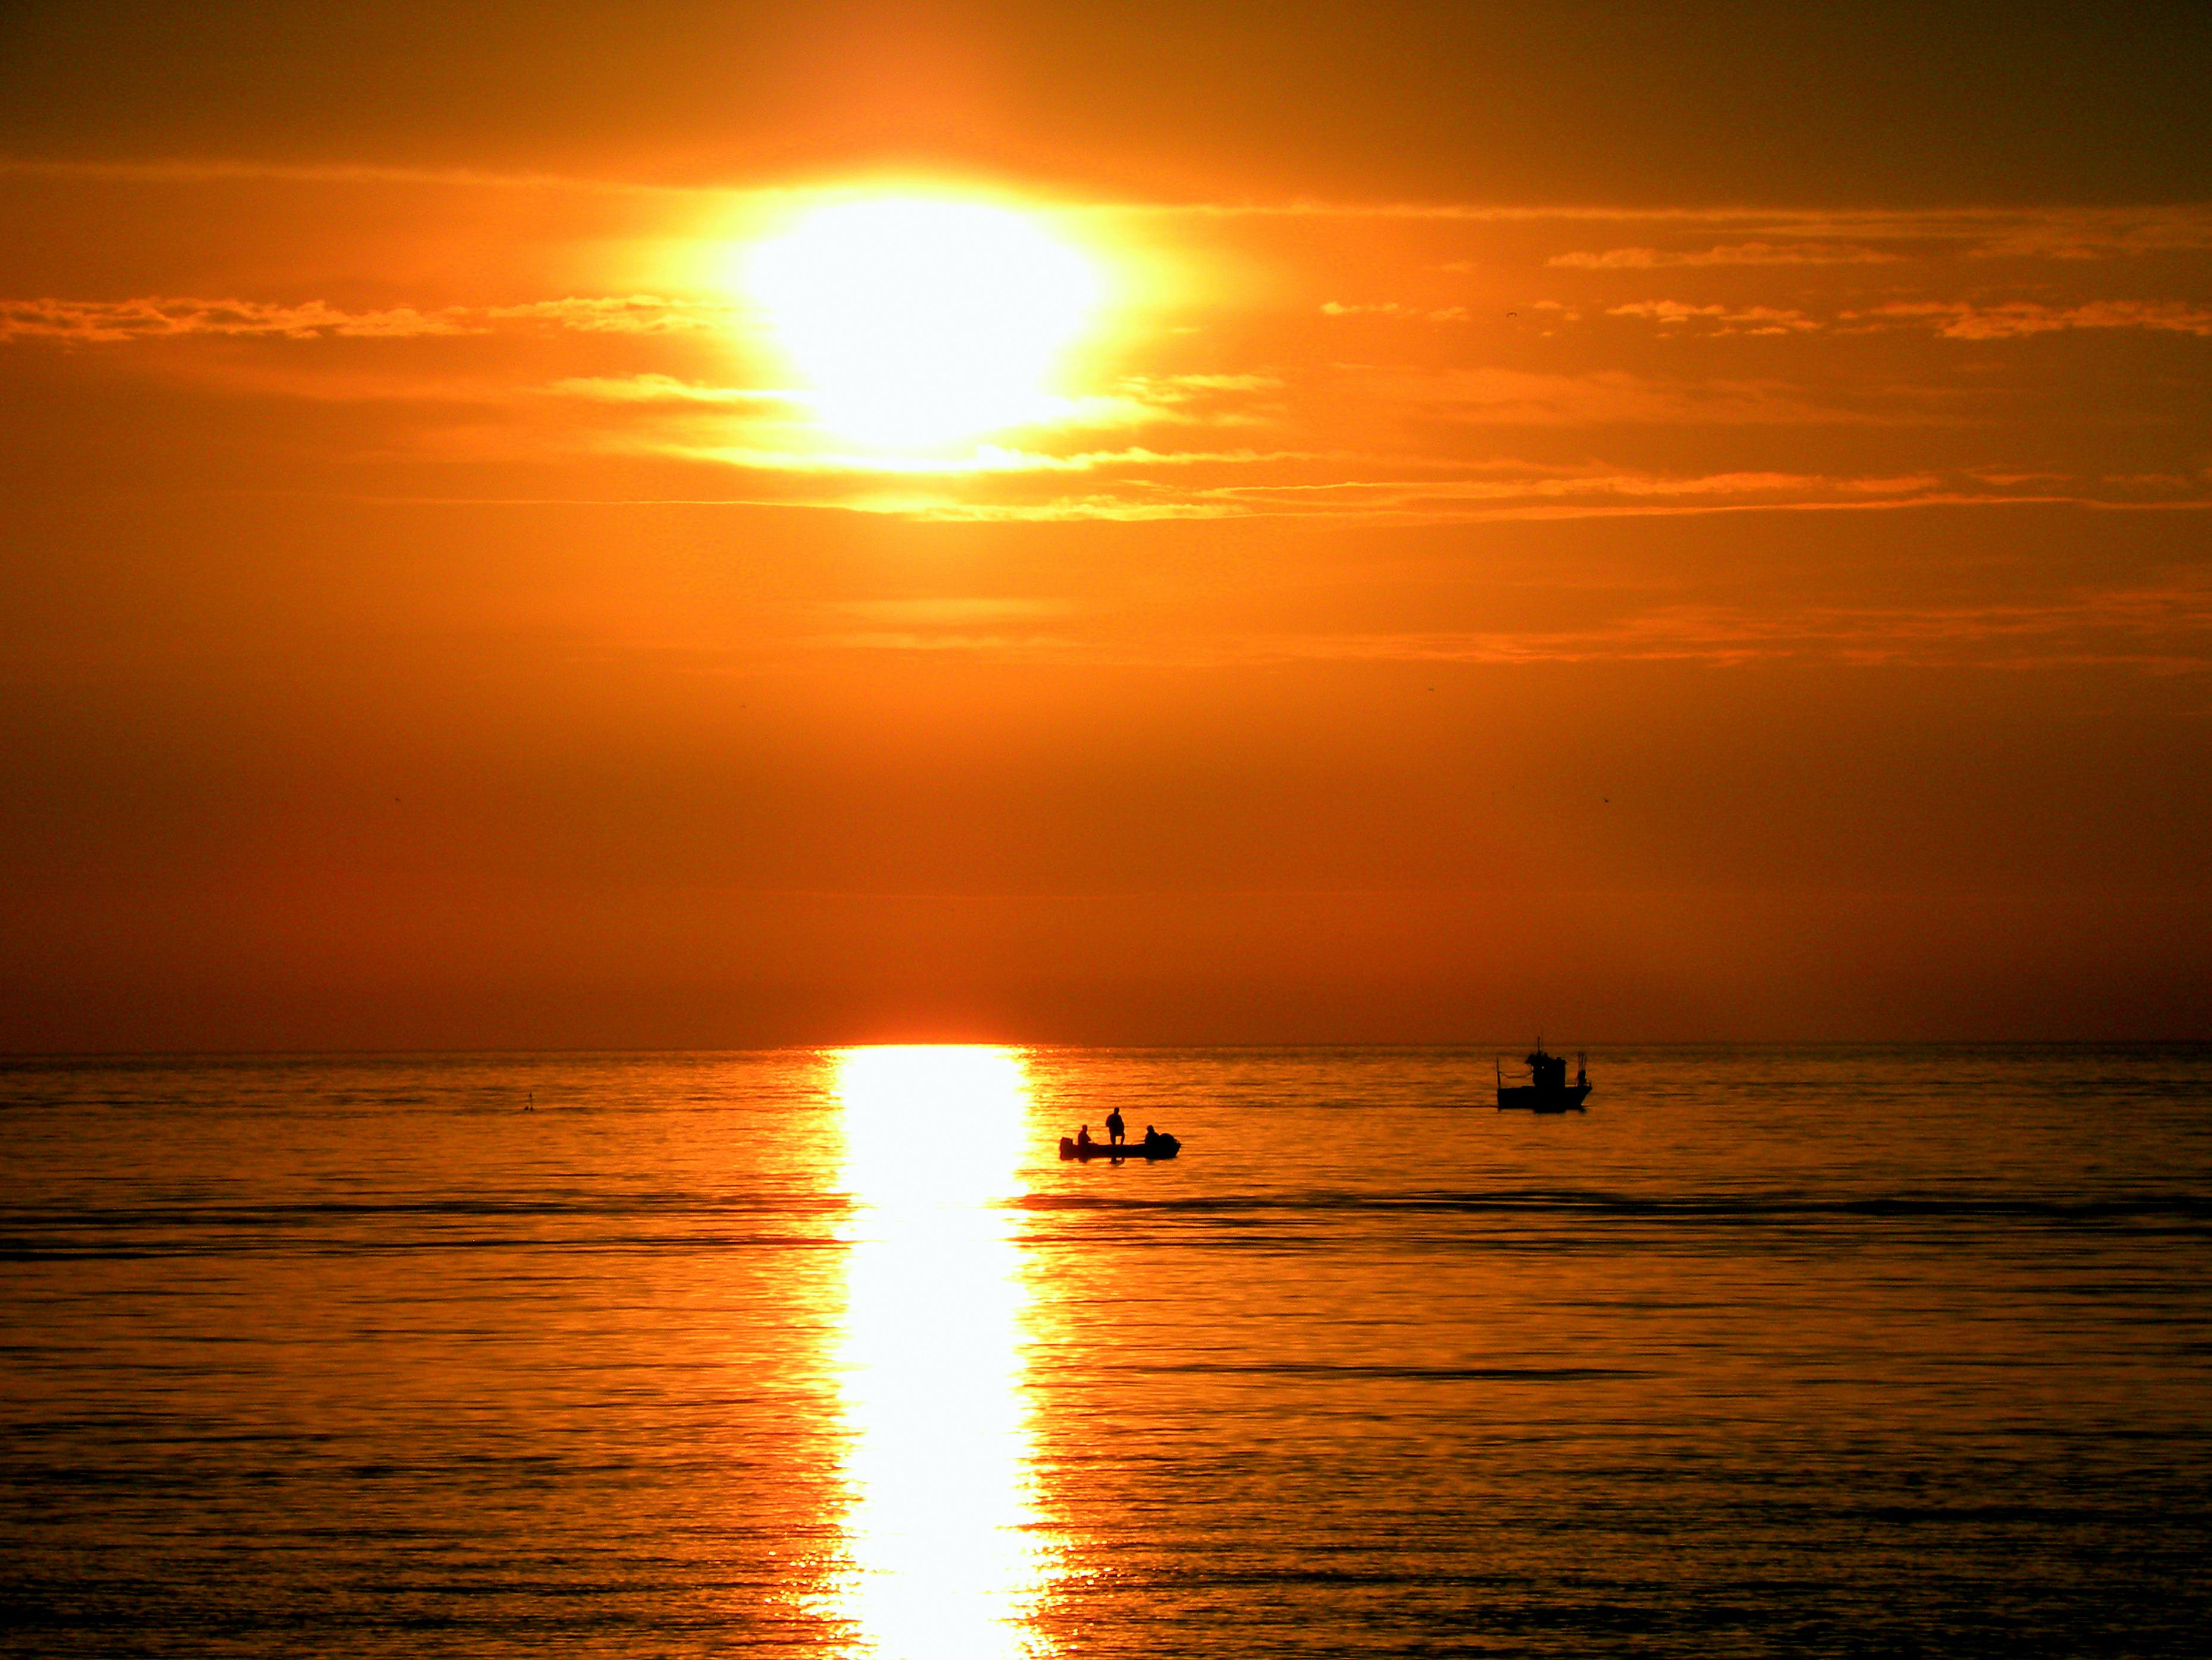 Silhouette of People on Boat during Golden Hours